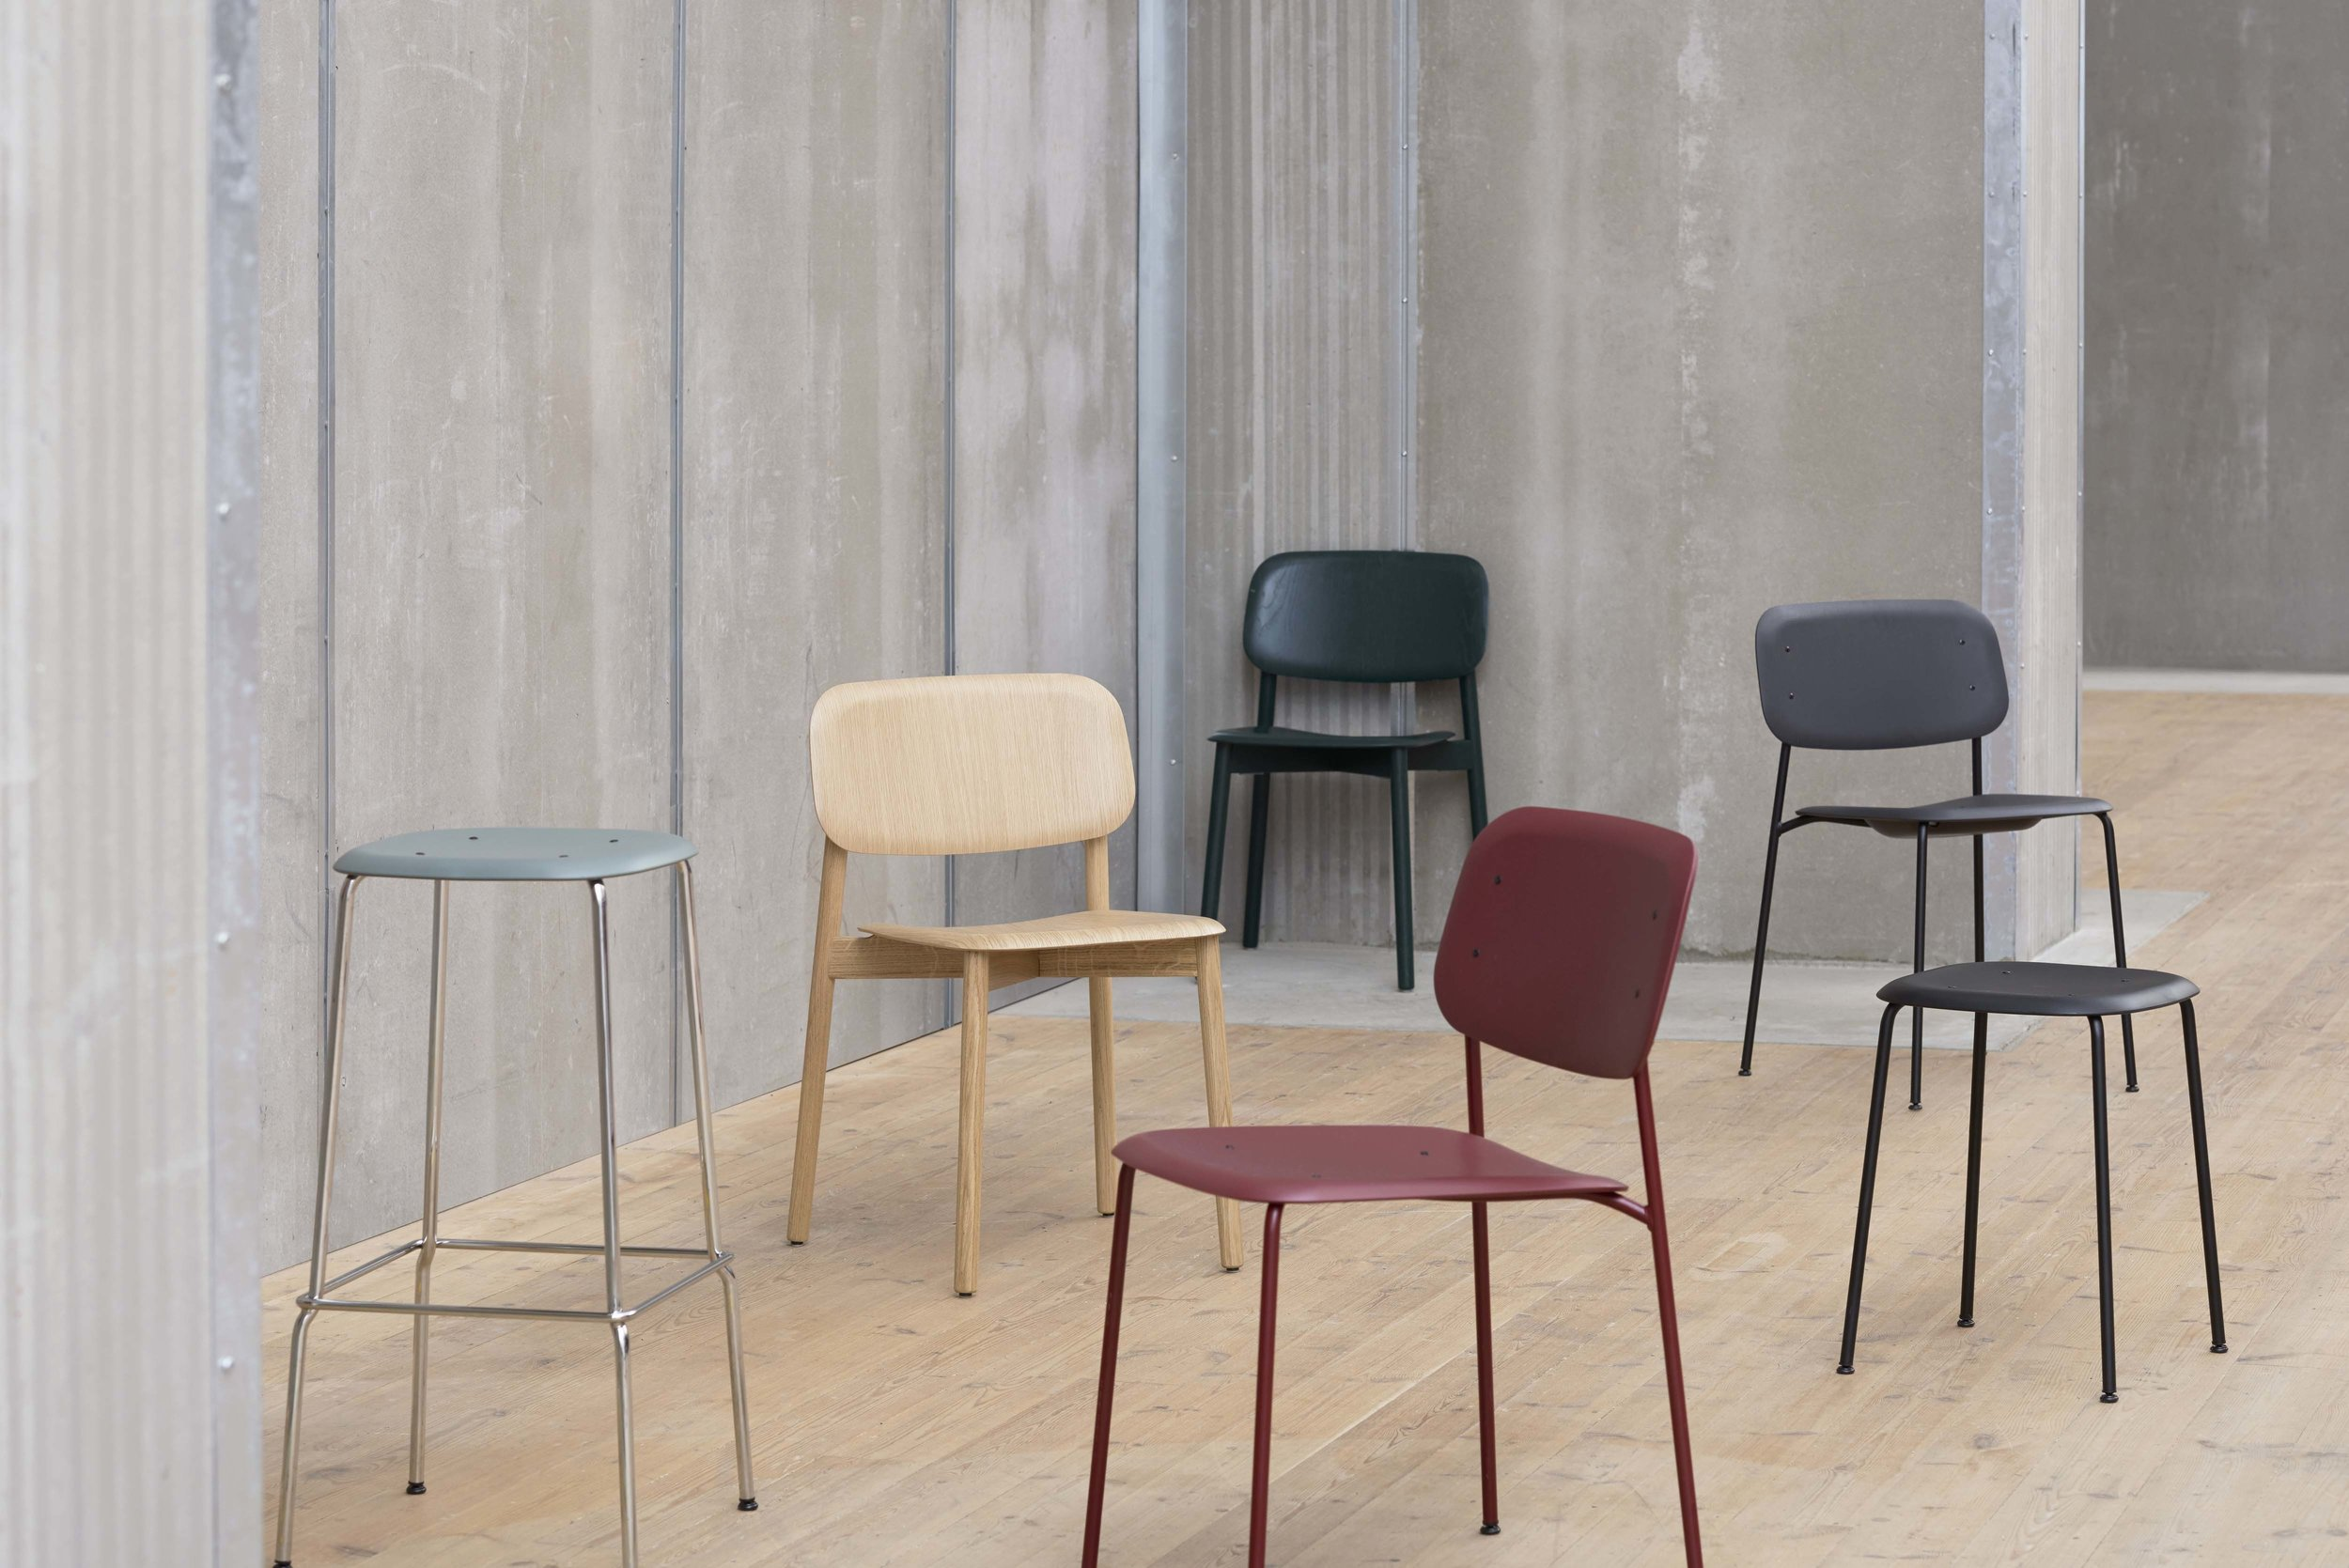 Soft Edge Collection_Soft Edge Bar stool P30, Soft Edge 1_Overview.jpg